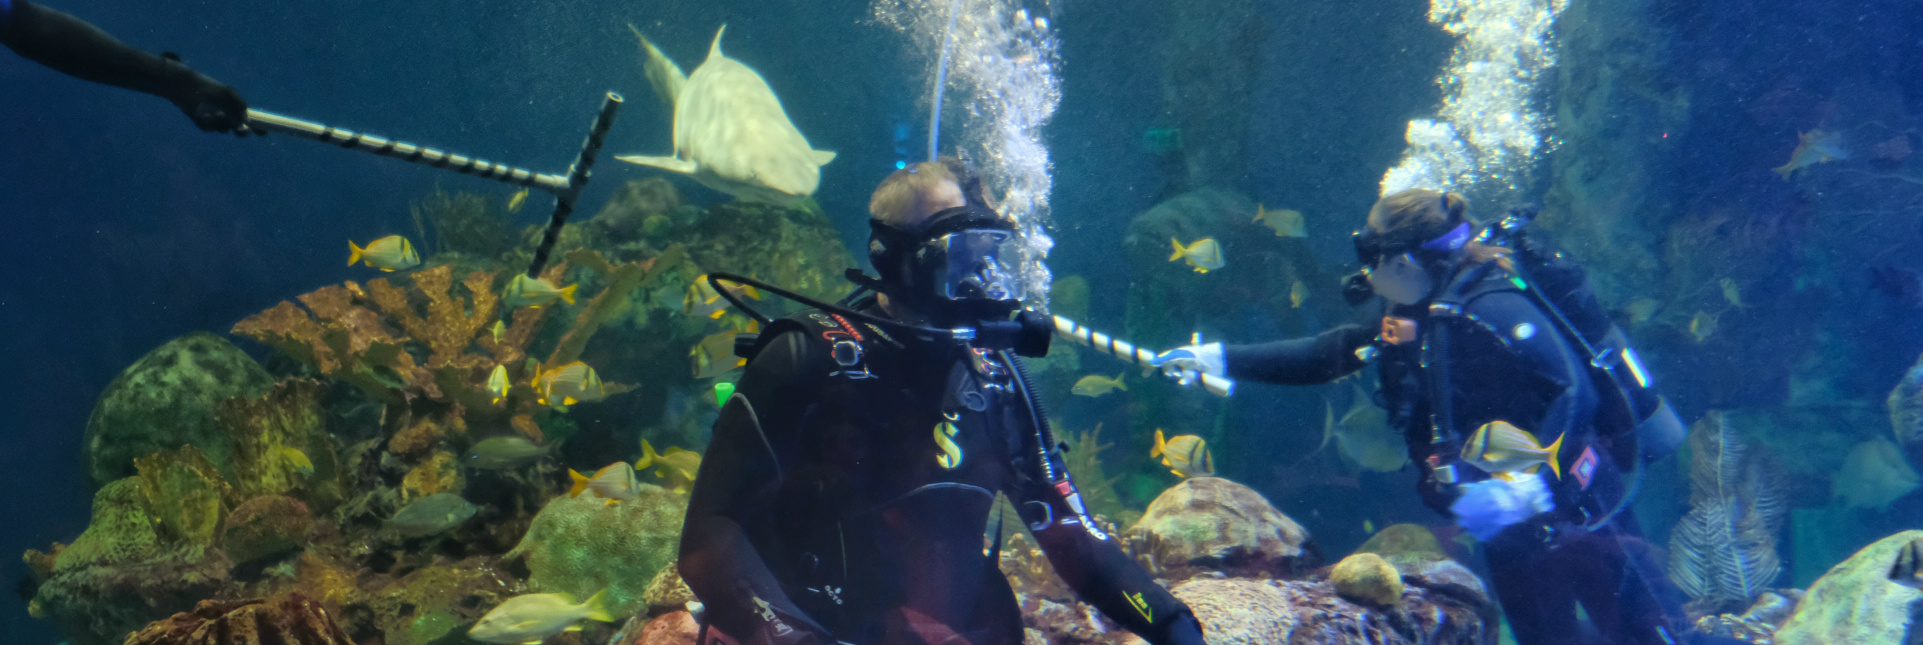 Secretary Zinke wearing SCUBA gear and diving underwater in a large aquarium tank with fish and rocks.